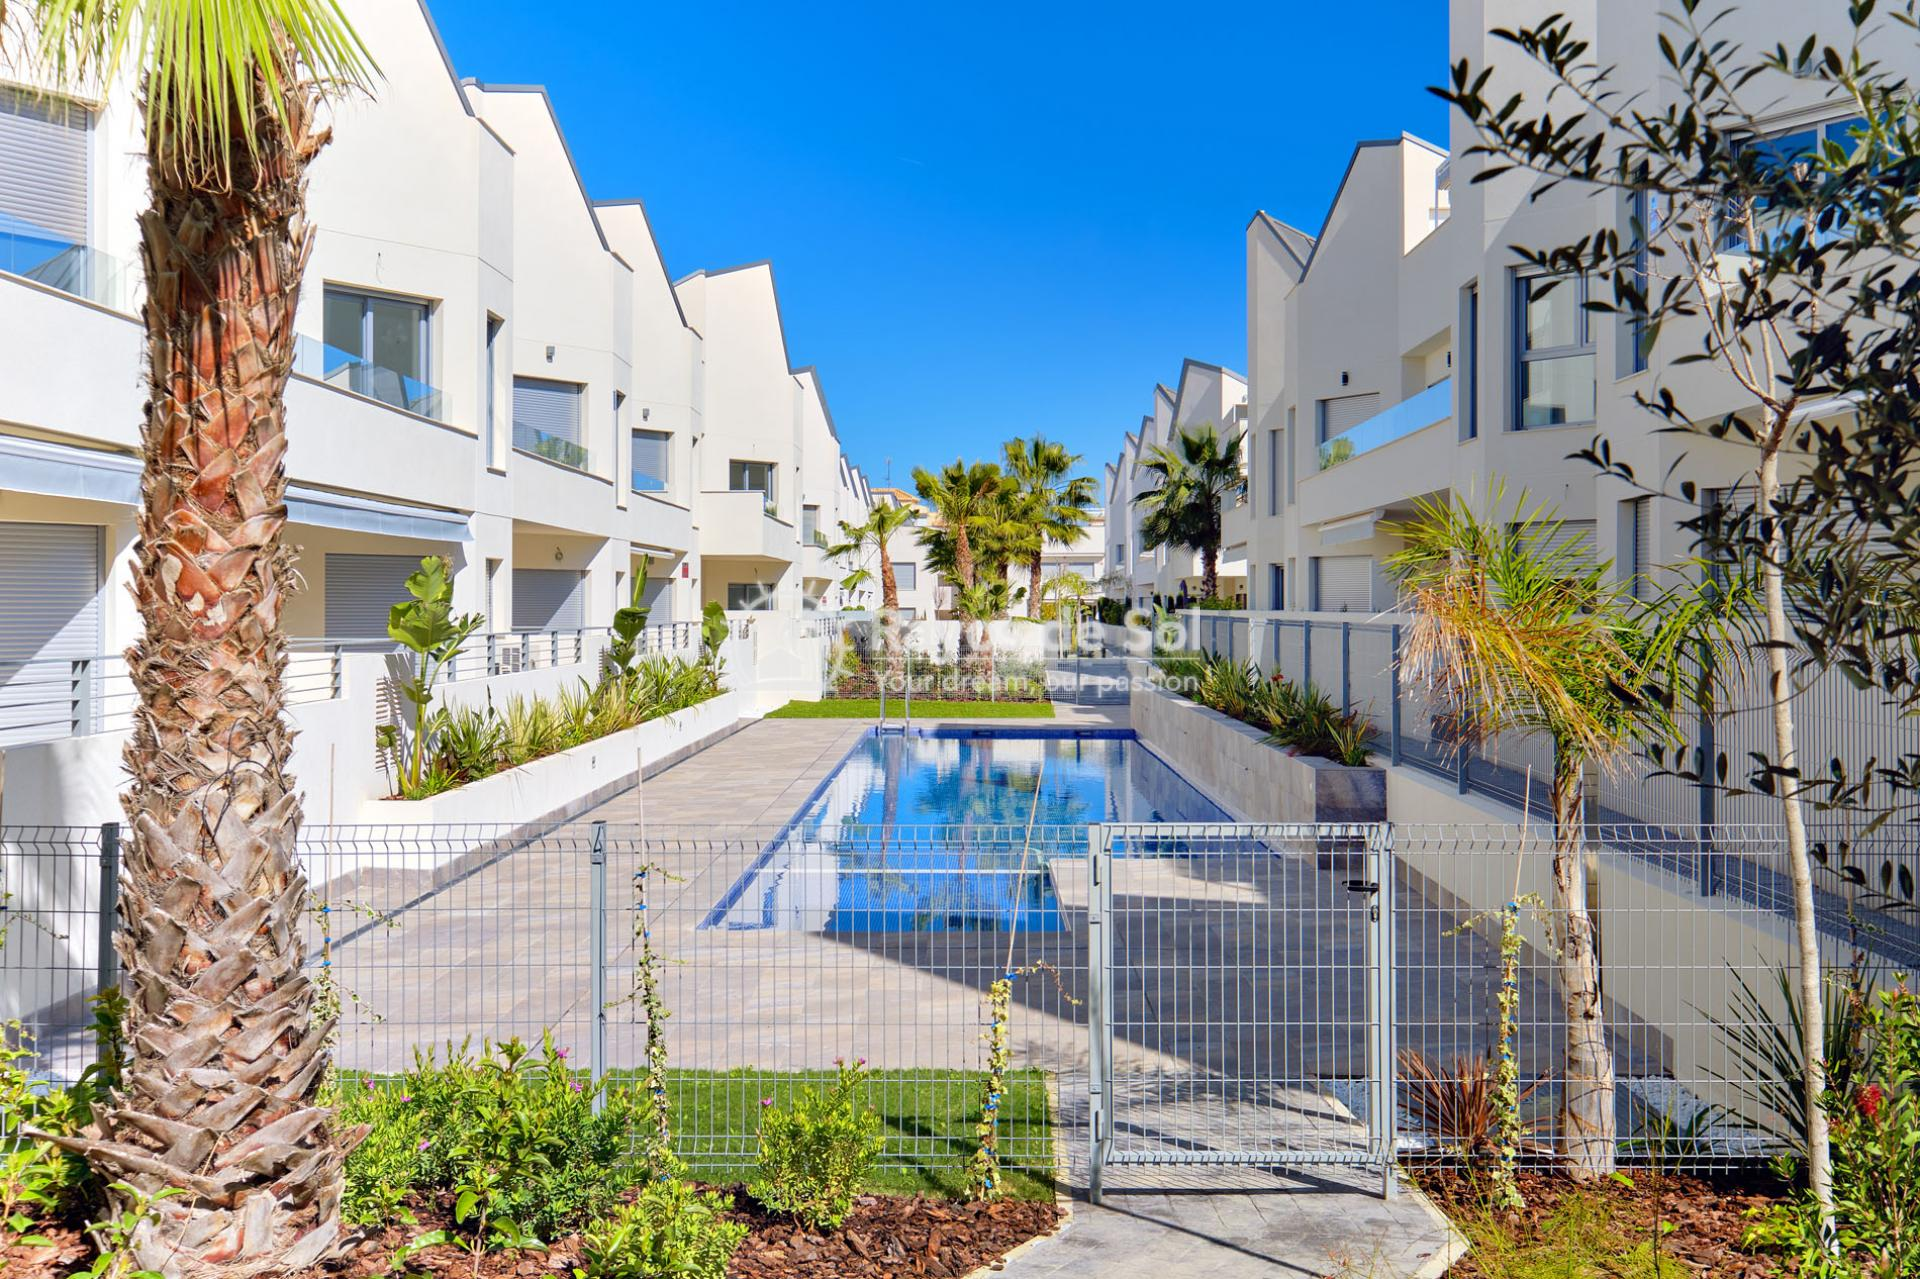 Townhouse  in Torrevieja, Costa Blanca (vamalia2-dpx) - 38